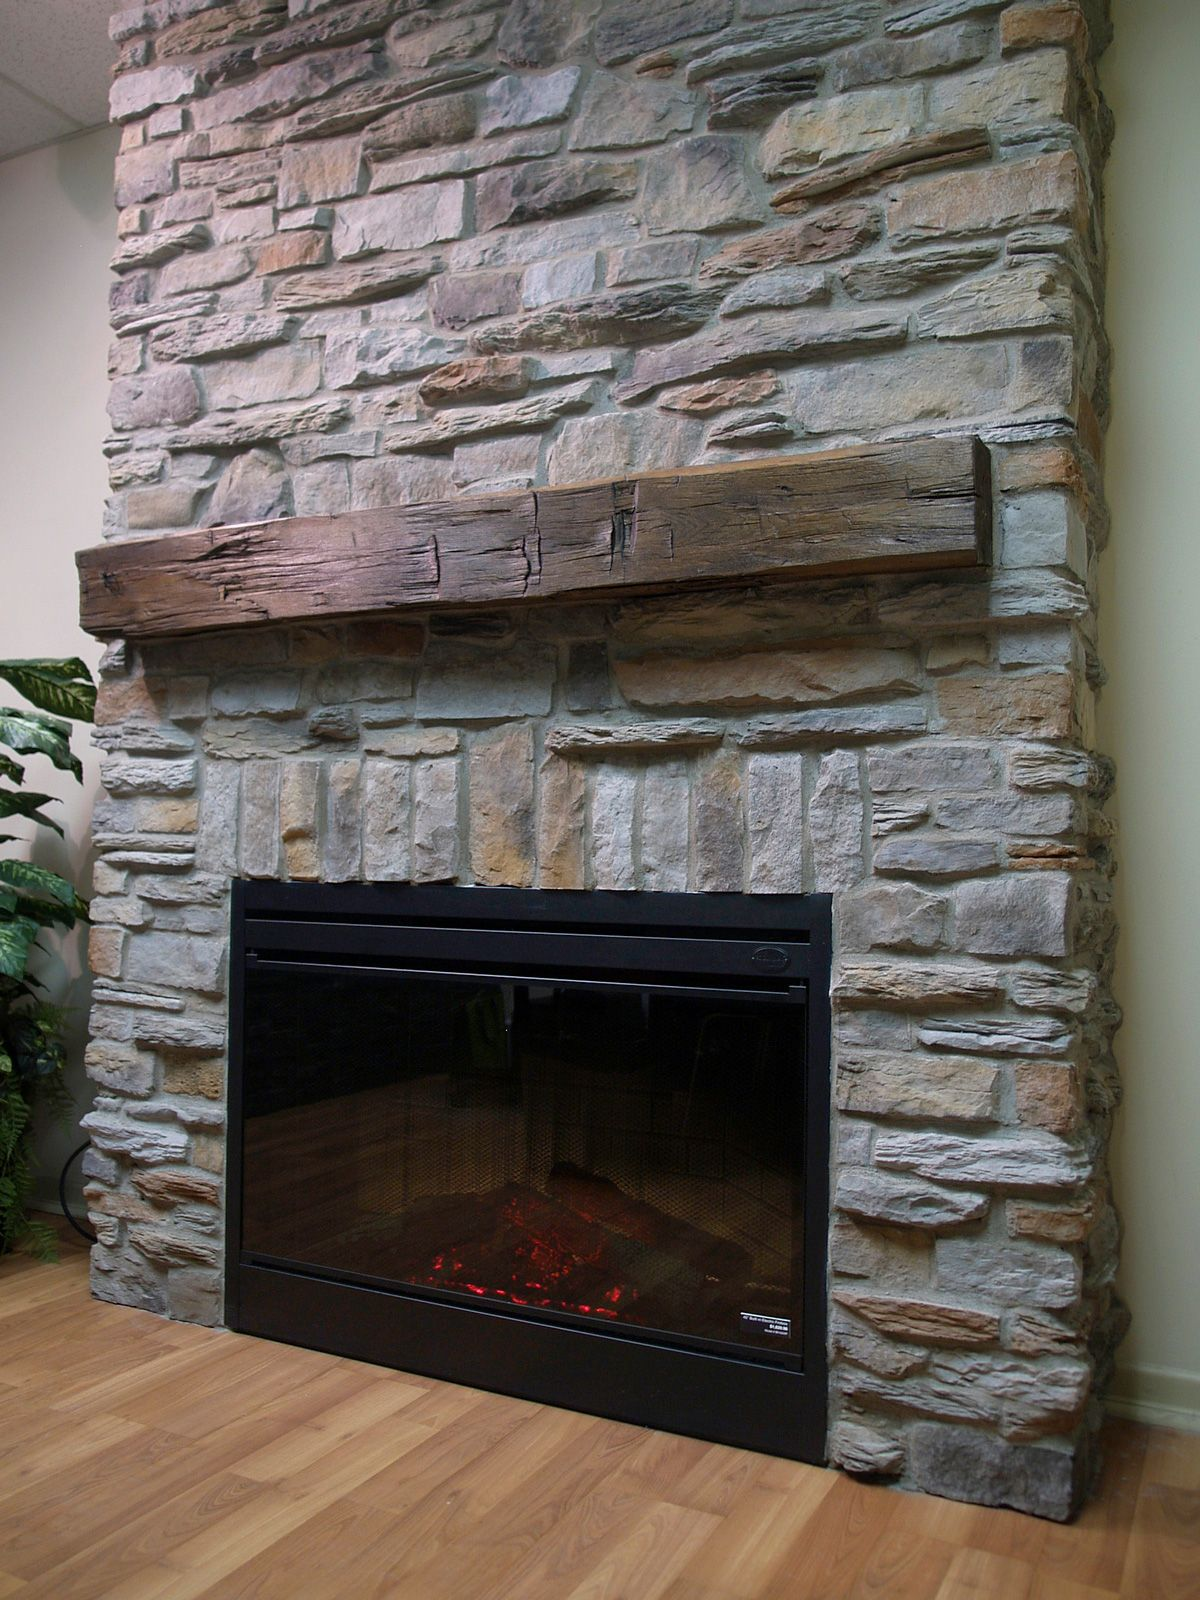 Tile Fireplaces Design Ideas vertical tile for fireplace Inspiring Rock Fireplace Design Ideas With Wooden Flooring Decoration